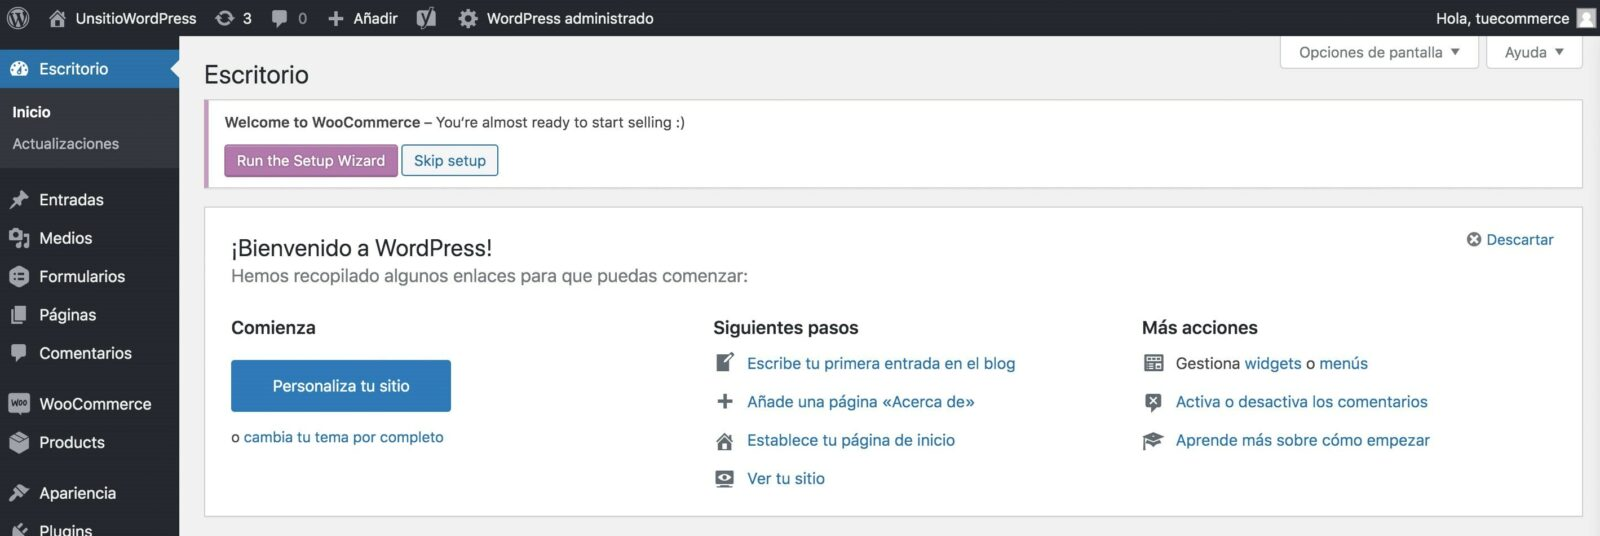 Panel de control de WooCommerce